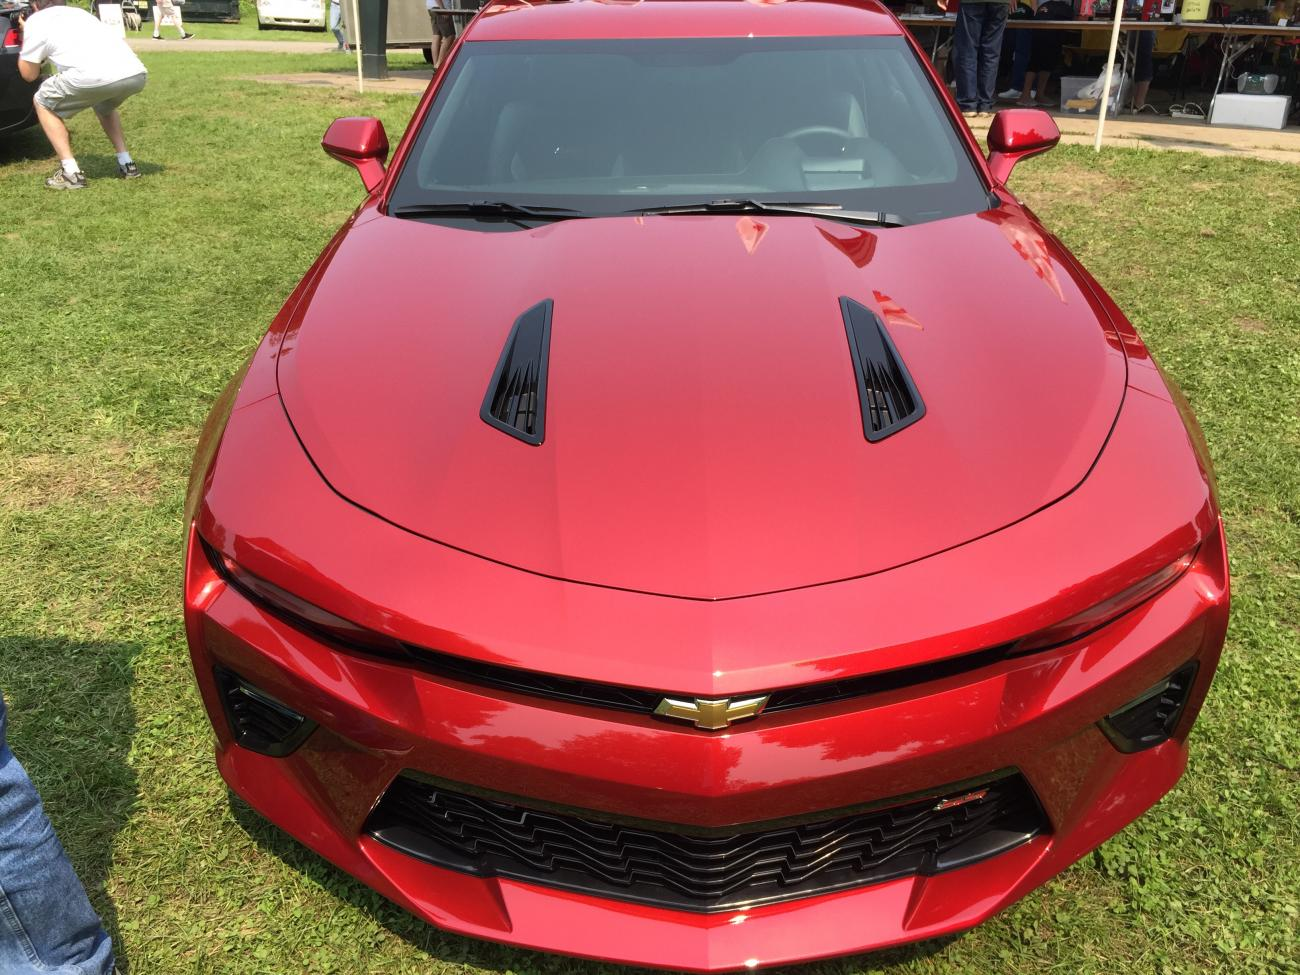 2016 Chevy Camaro Ss Models Spotted Out In The Open W